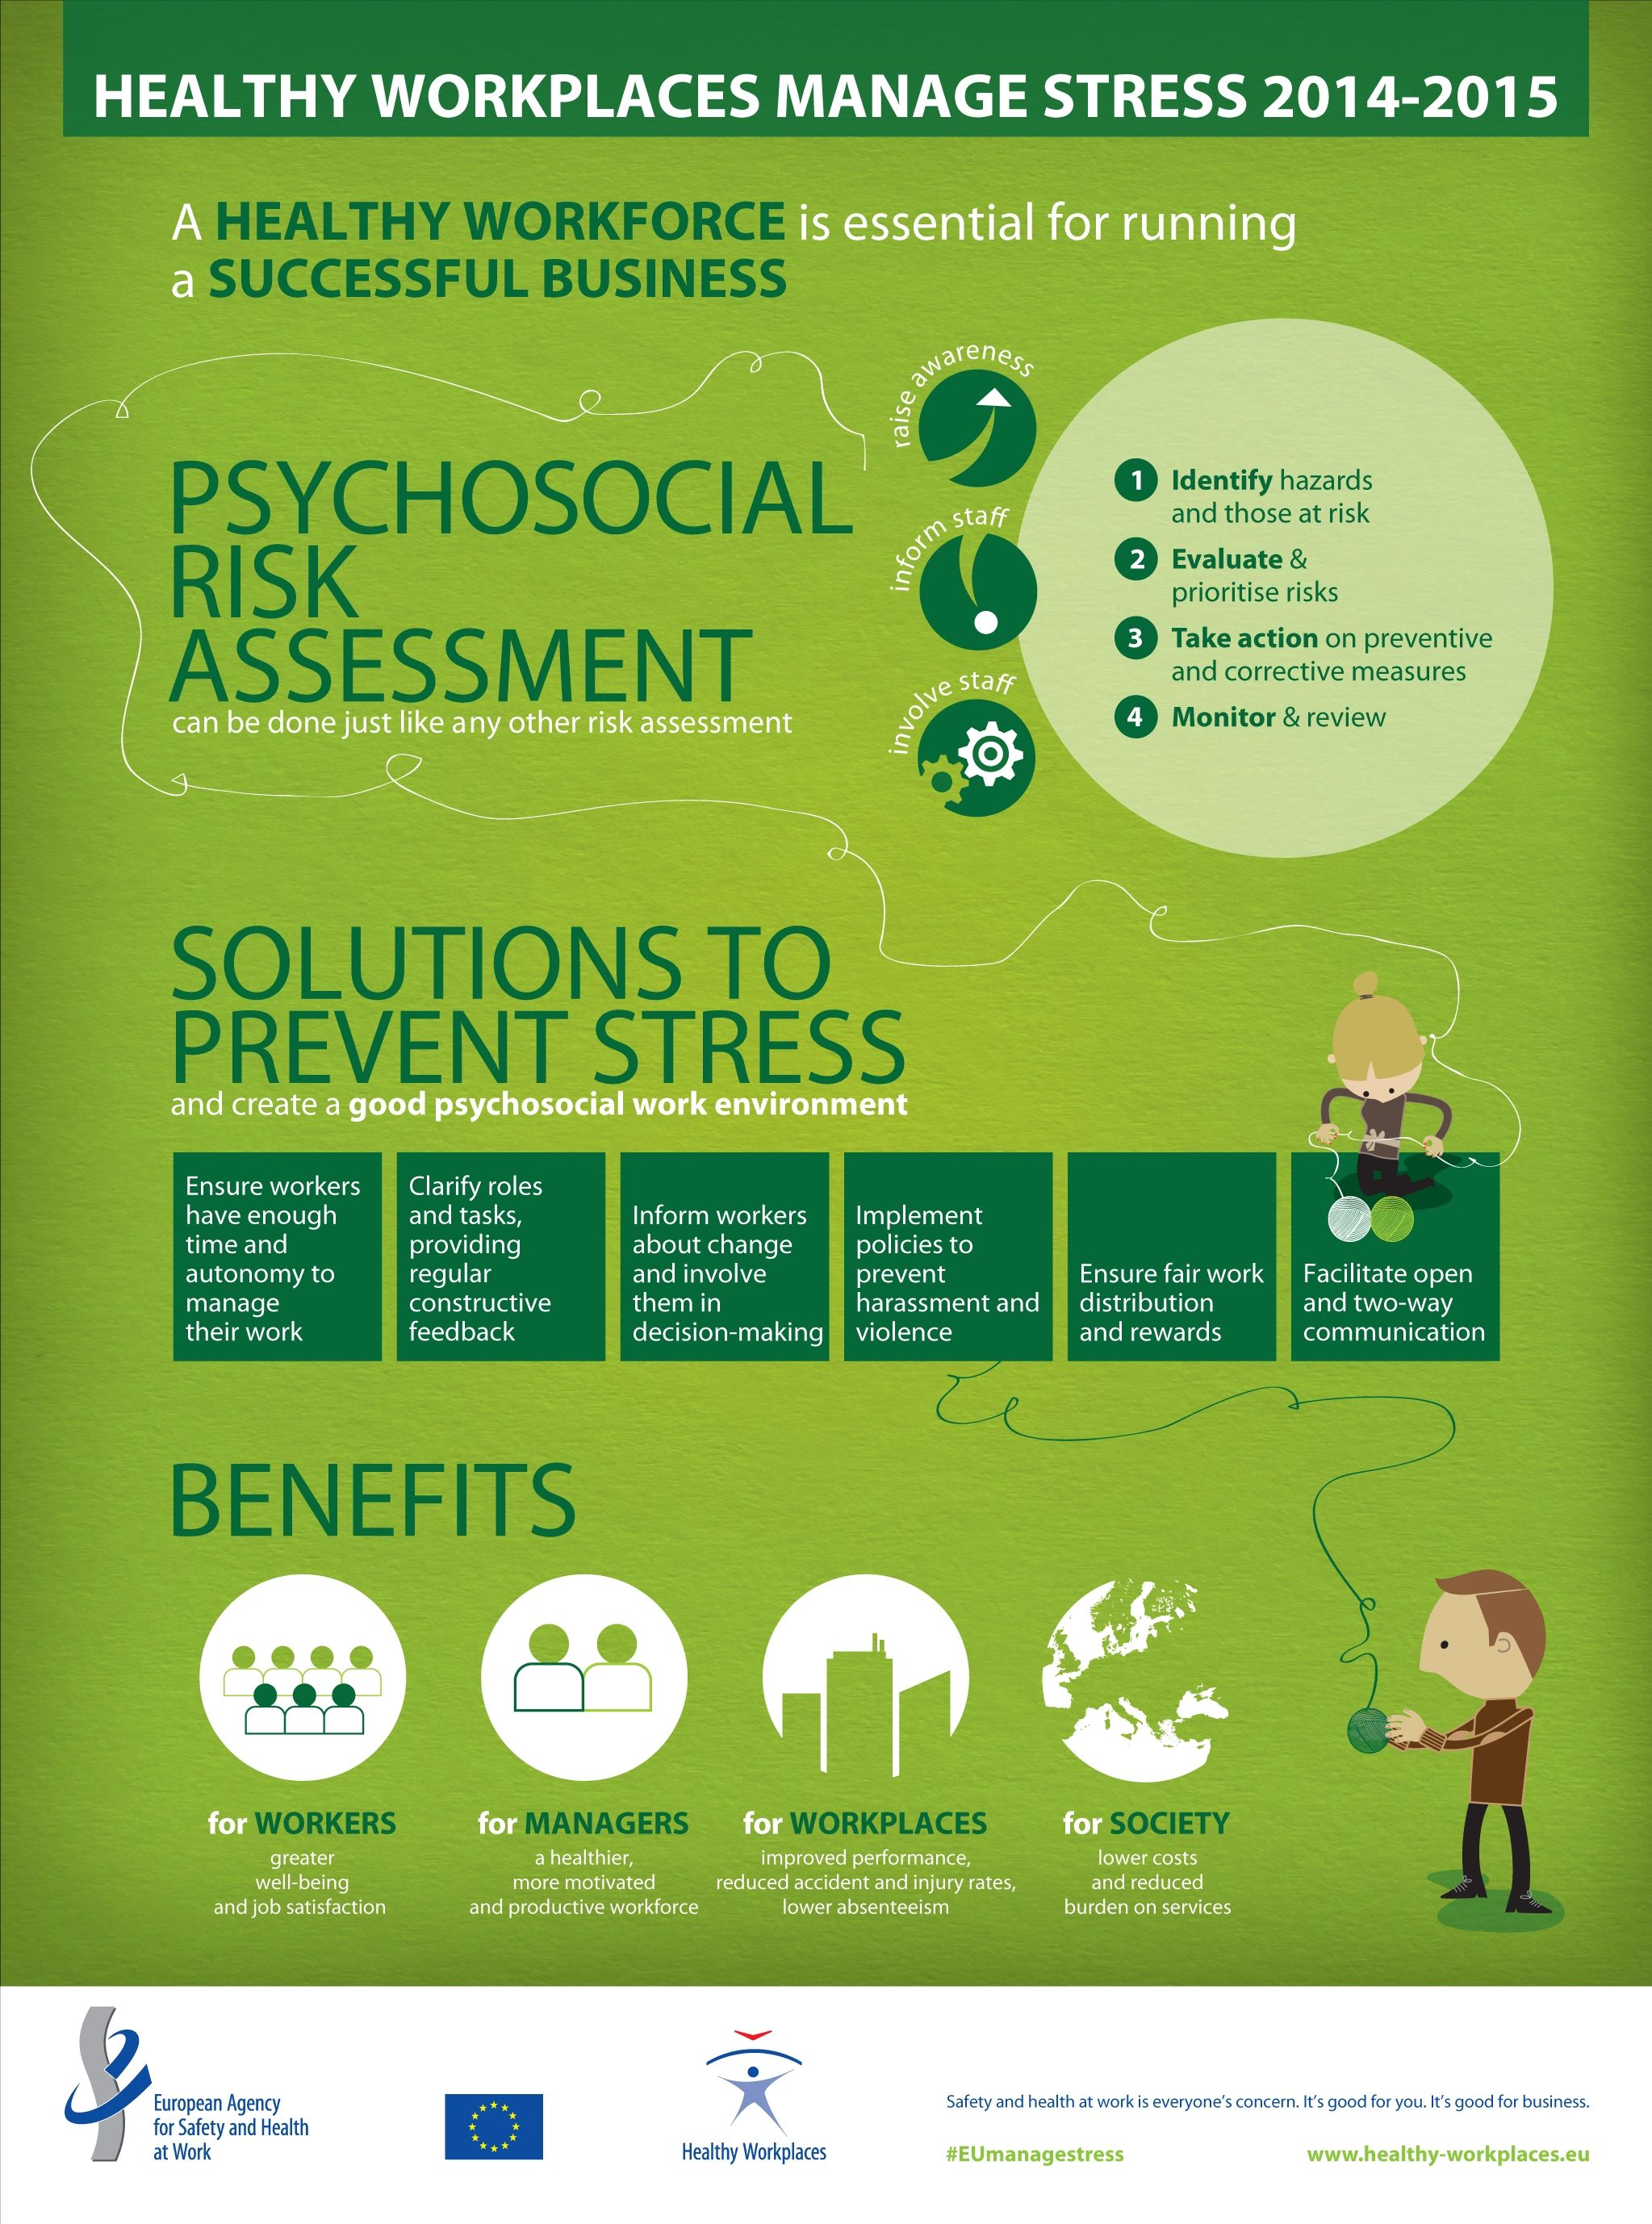 Who Has To Be Involved In Managing Stress And Psychosocial